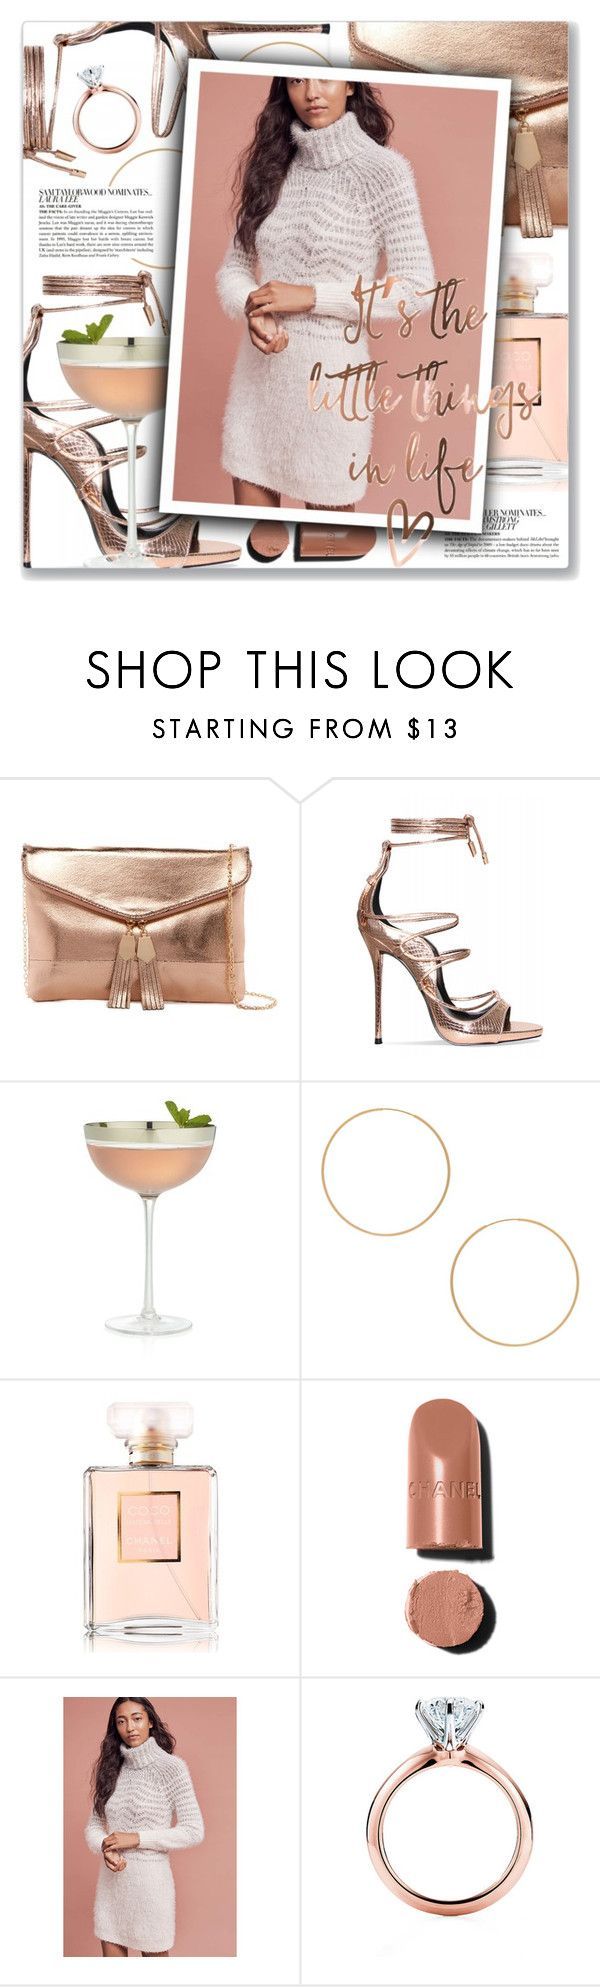 """Eres, Café Tacvba"" by blendasantos ❤ liked on Polyvore featuring Urban Expressions, Crate and Barrel, ERTH, McGinn, Chanel, Sleeping on Snow and Tiffany & Co."